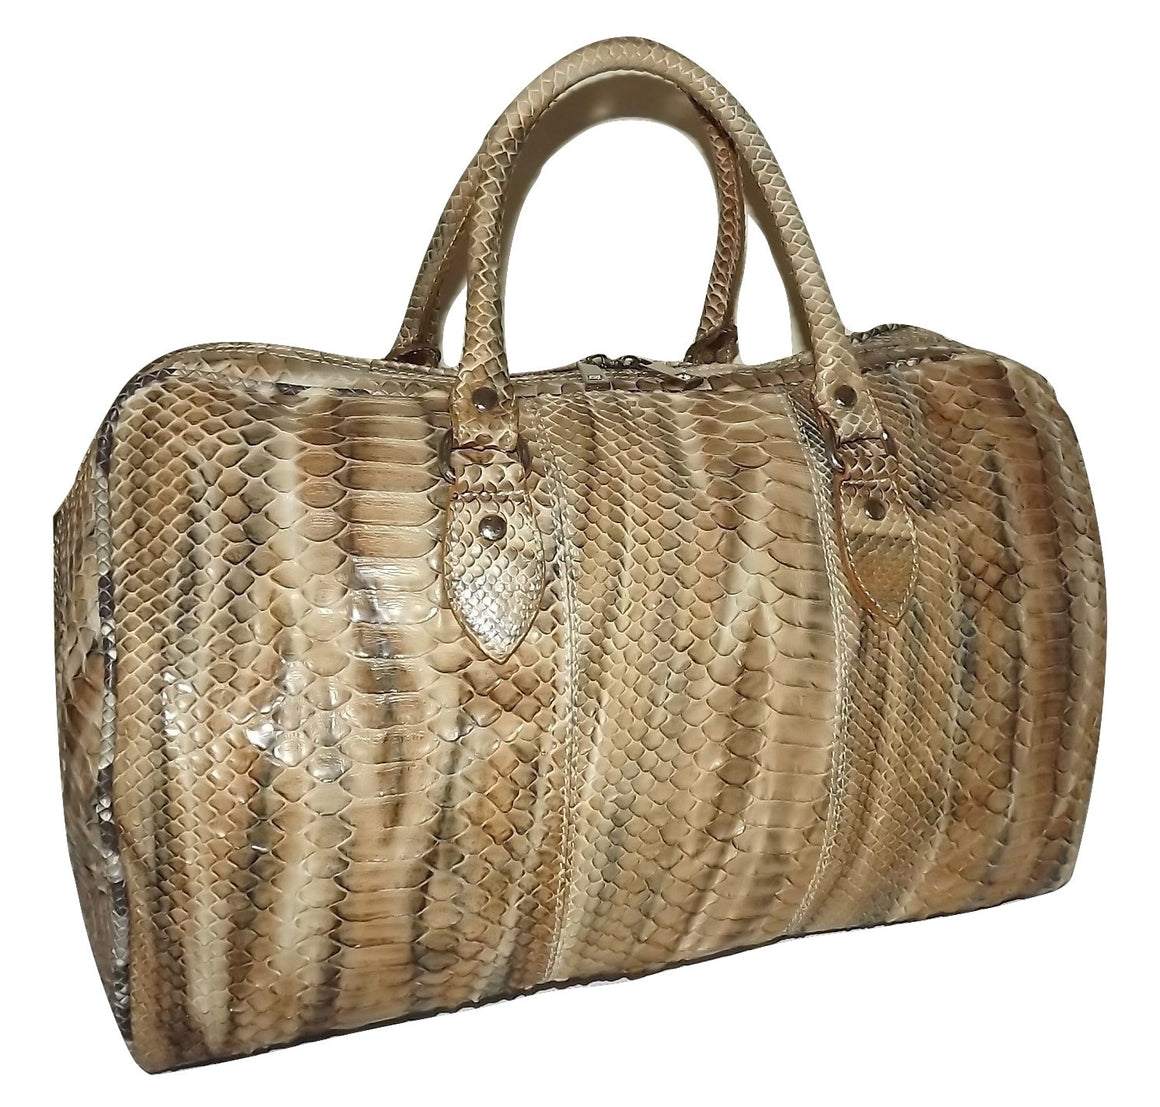 "Baglioni Italia Vero Pitone Genuine Python 18"" Carry-on Duffel Luggage Brown"